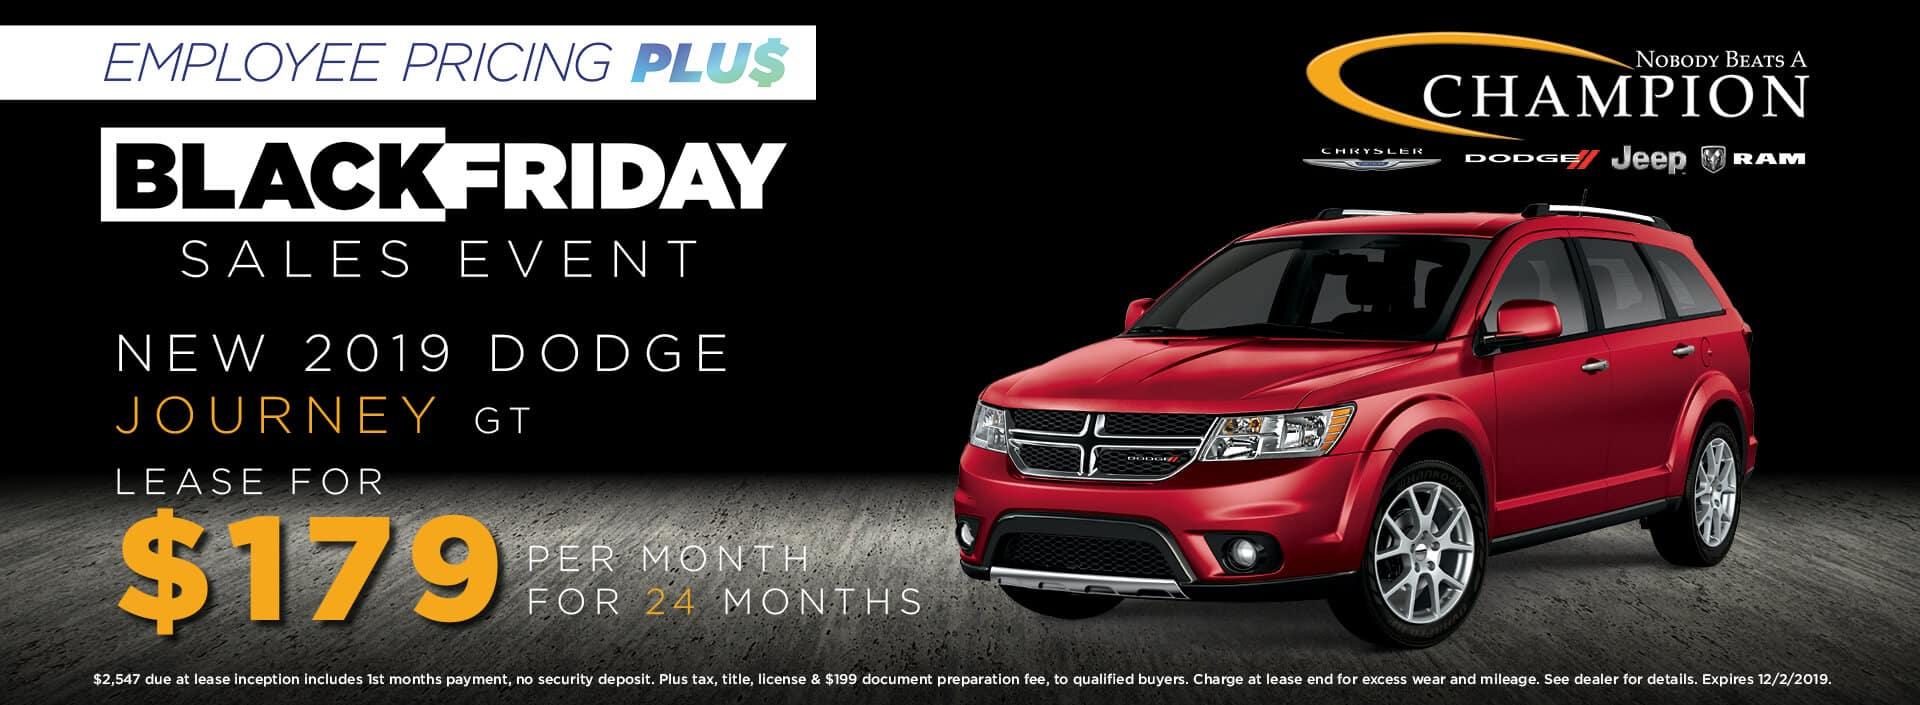 Lease a 2019 Dodge Journey GT for $179/mo. for 24 mos.